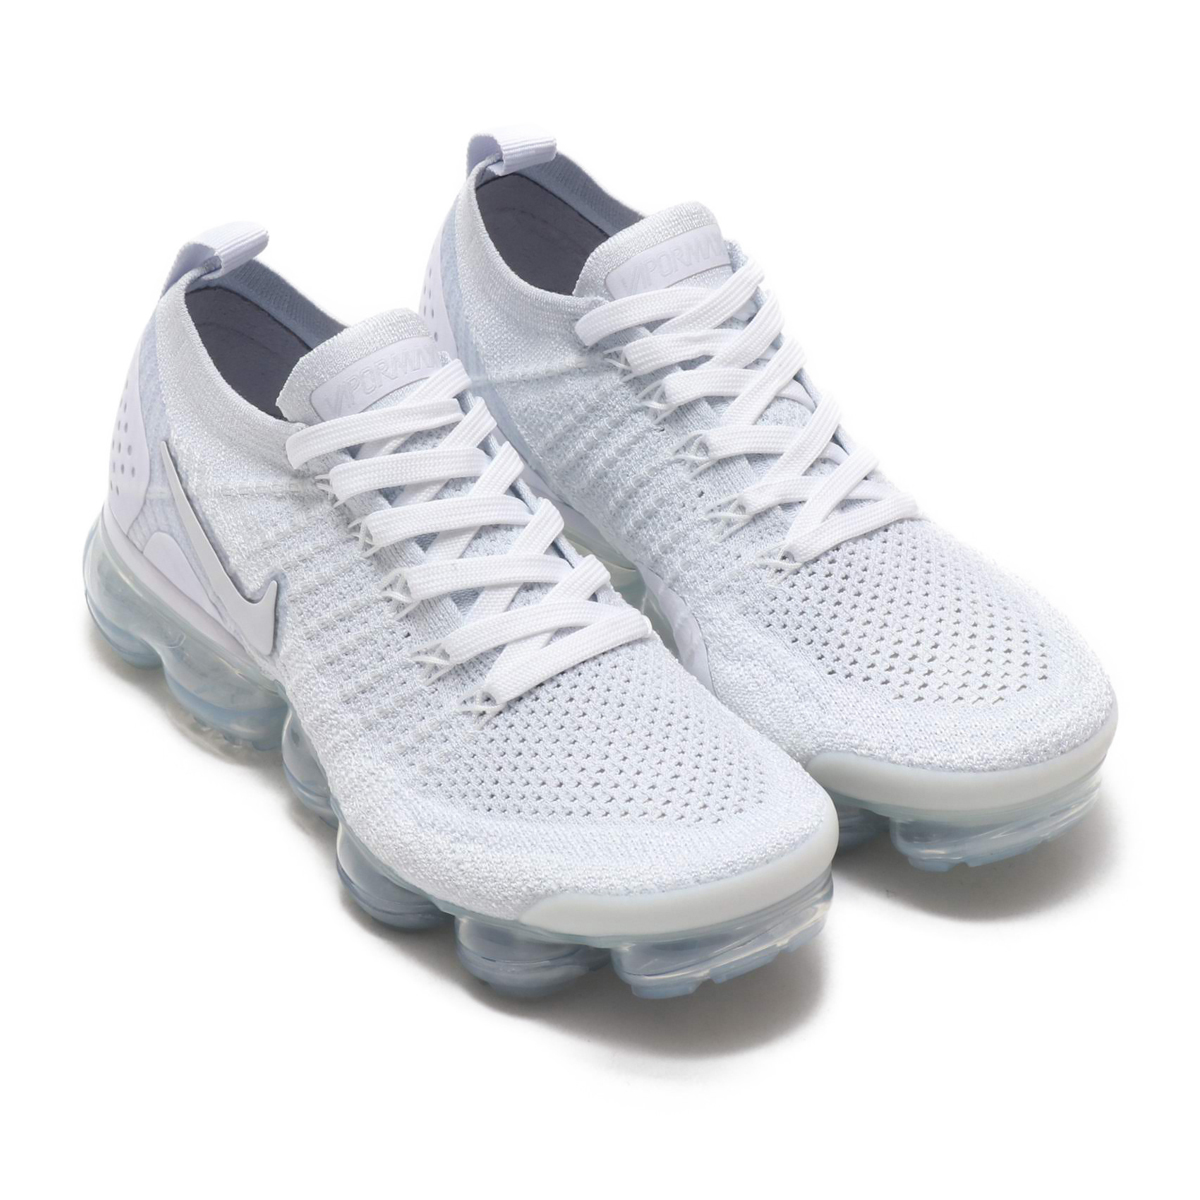 NIKE W AIR VAPORMAX FLYKNIT 2 (Nike women air vapor max fried food knit 2)  WHITE WHITE-VAST GREY-FOOTBALL GREY 18FA-S 6080eaf99